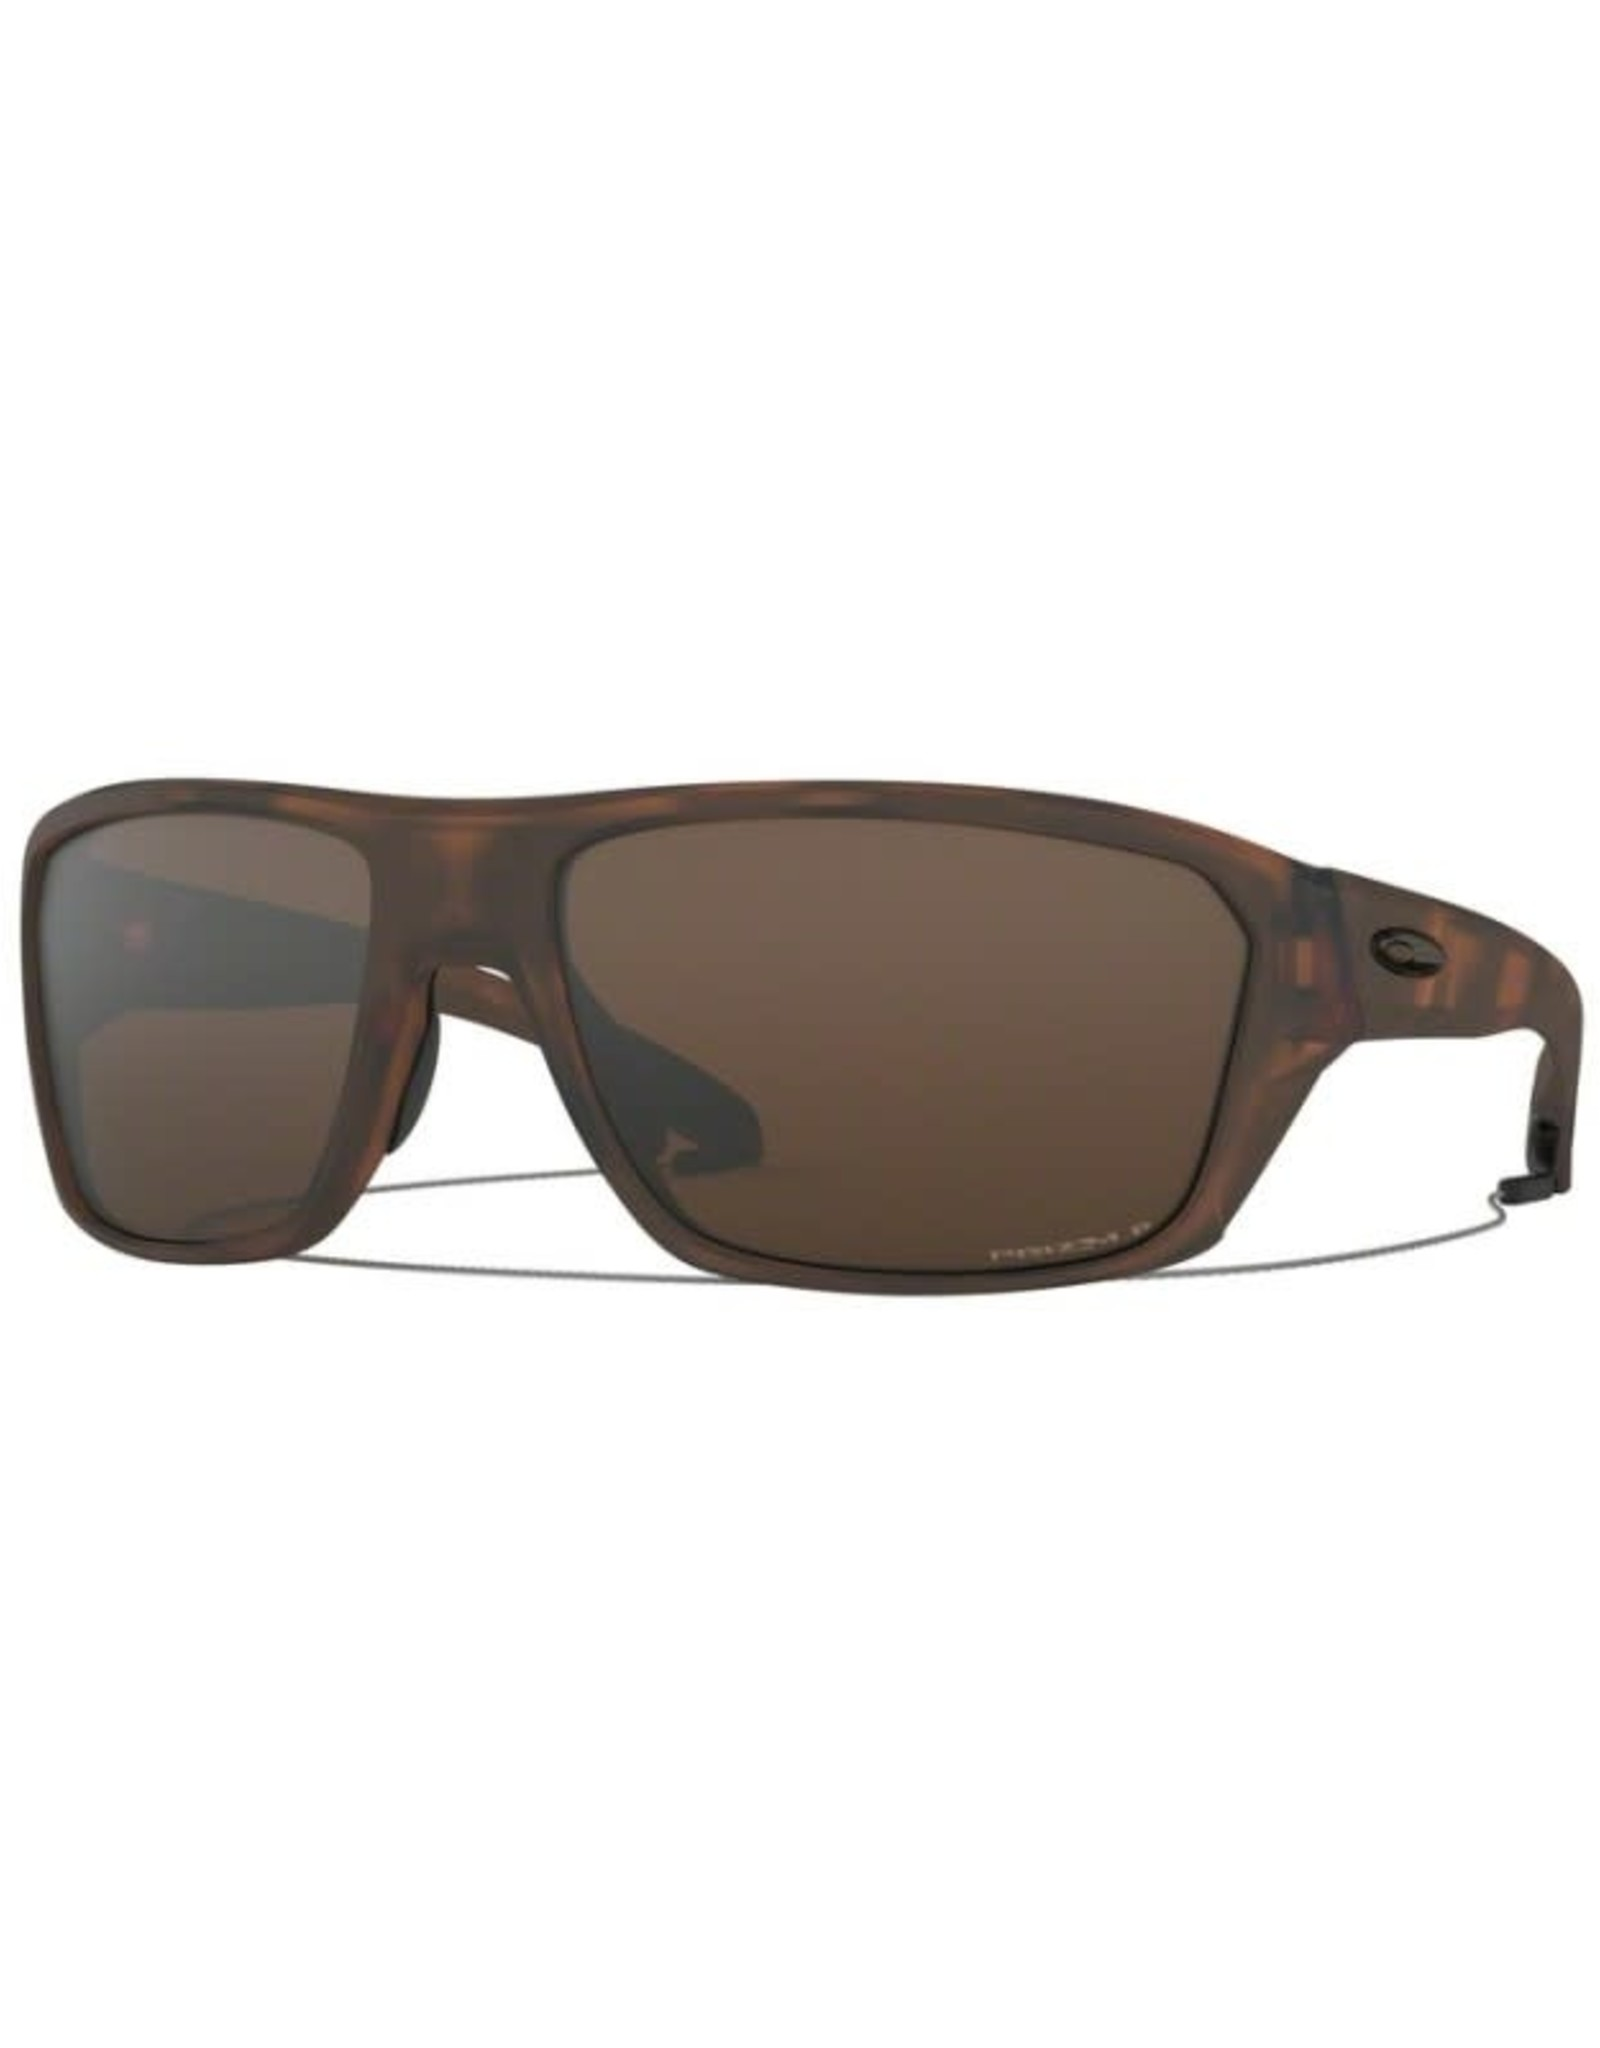 Oakley SPLIT SHOT Matte Brown Tortoise, Prizm Tungsten Iridium Poalrized